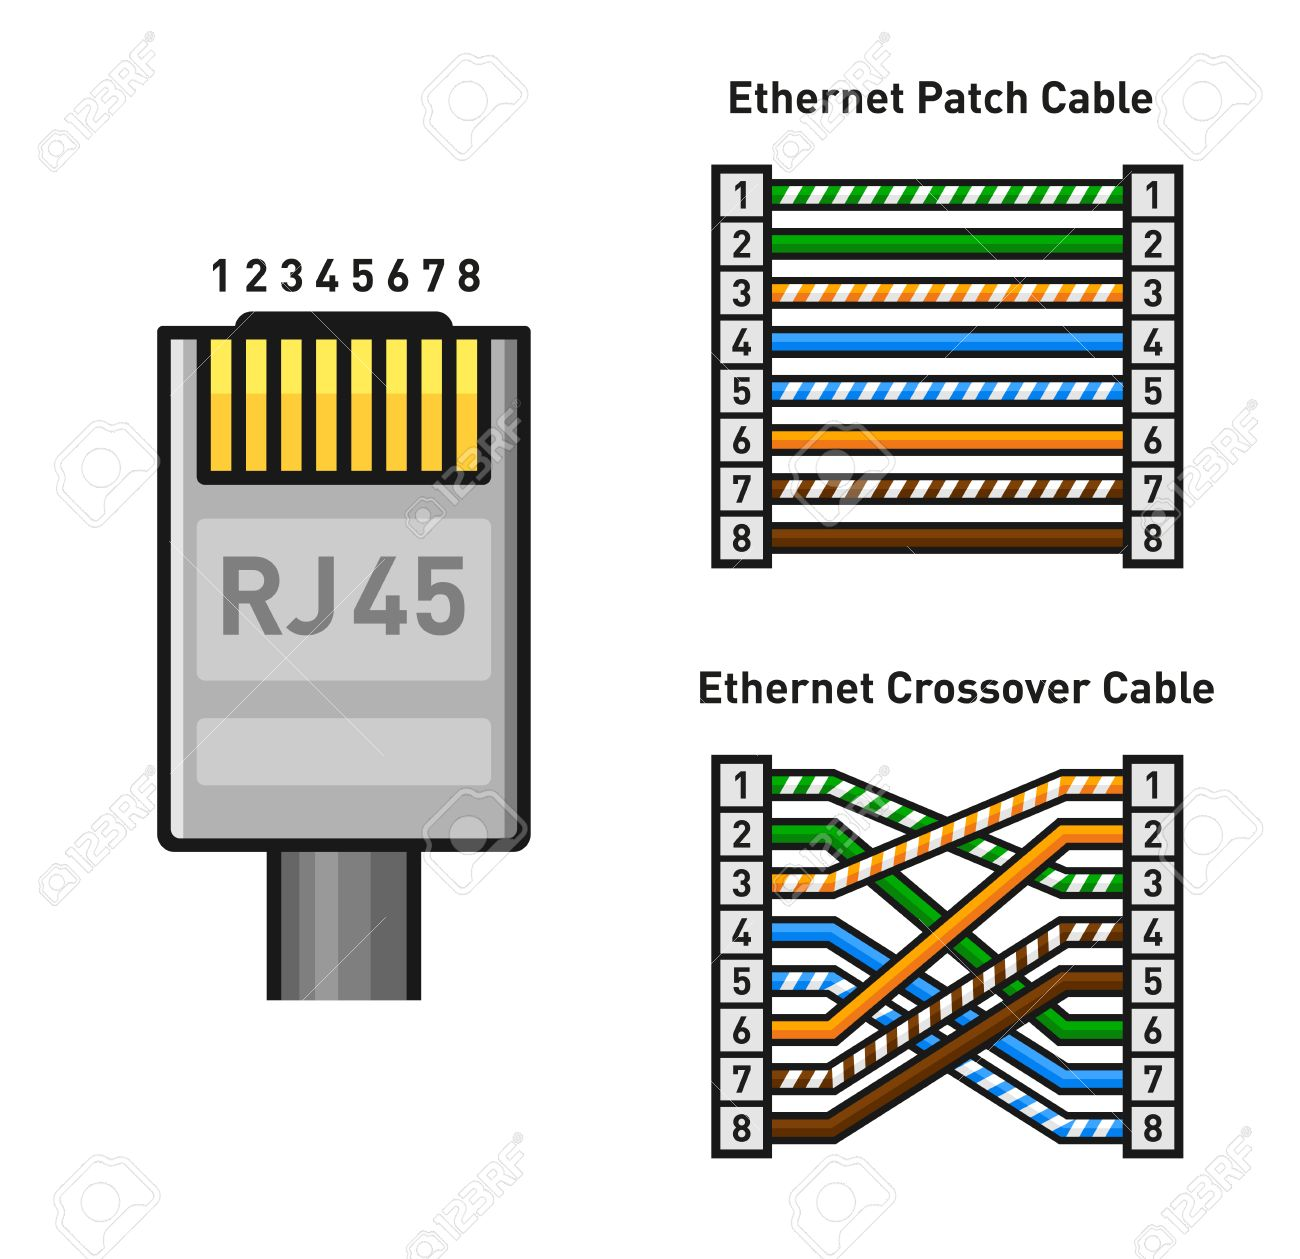 Wiring Diagram For Rj45 Connector Wiring A RJ 45 Connector – Network Wiring Diagram Rj45